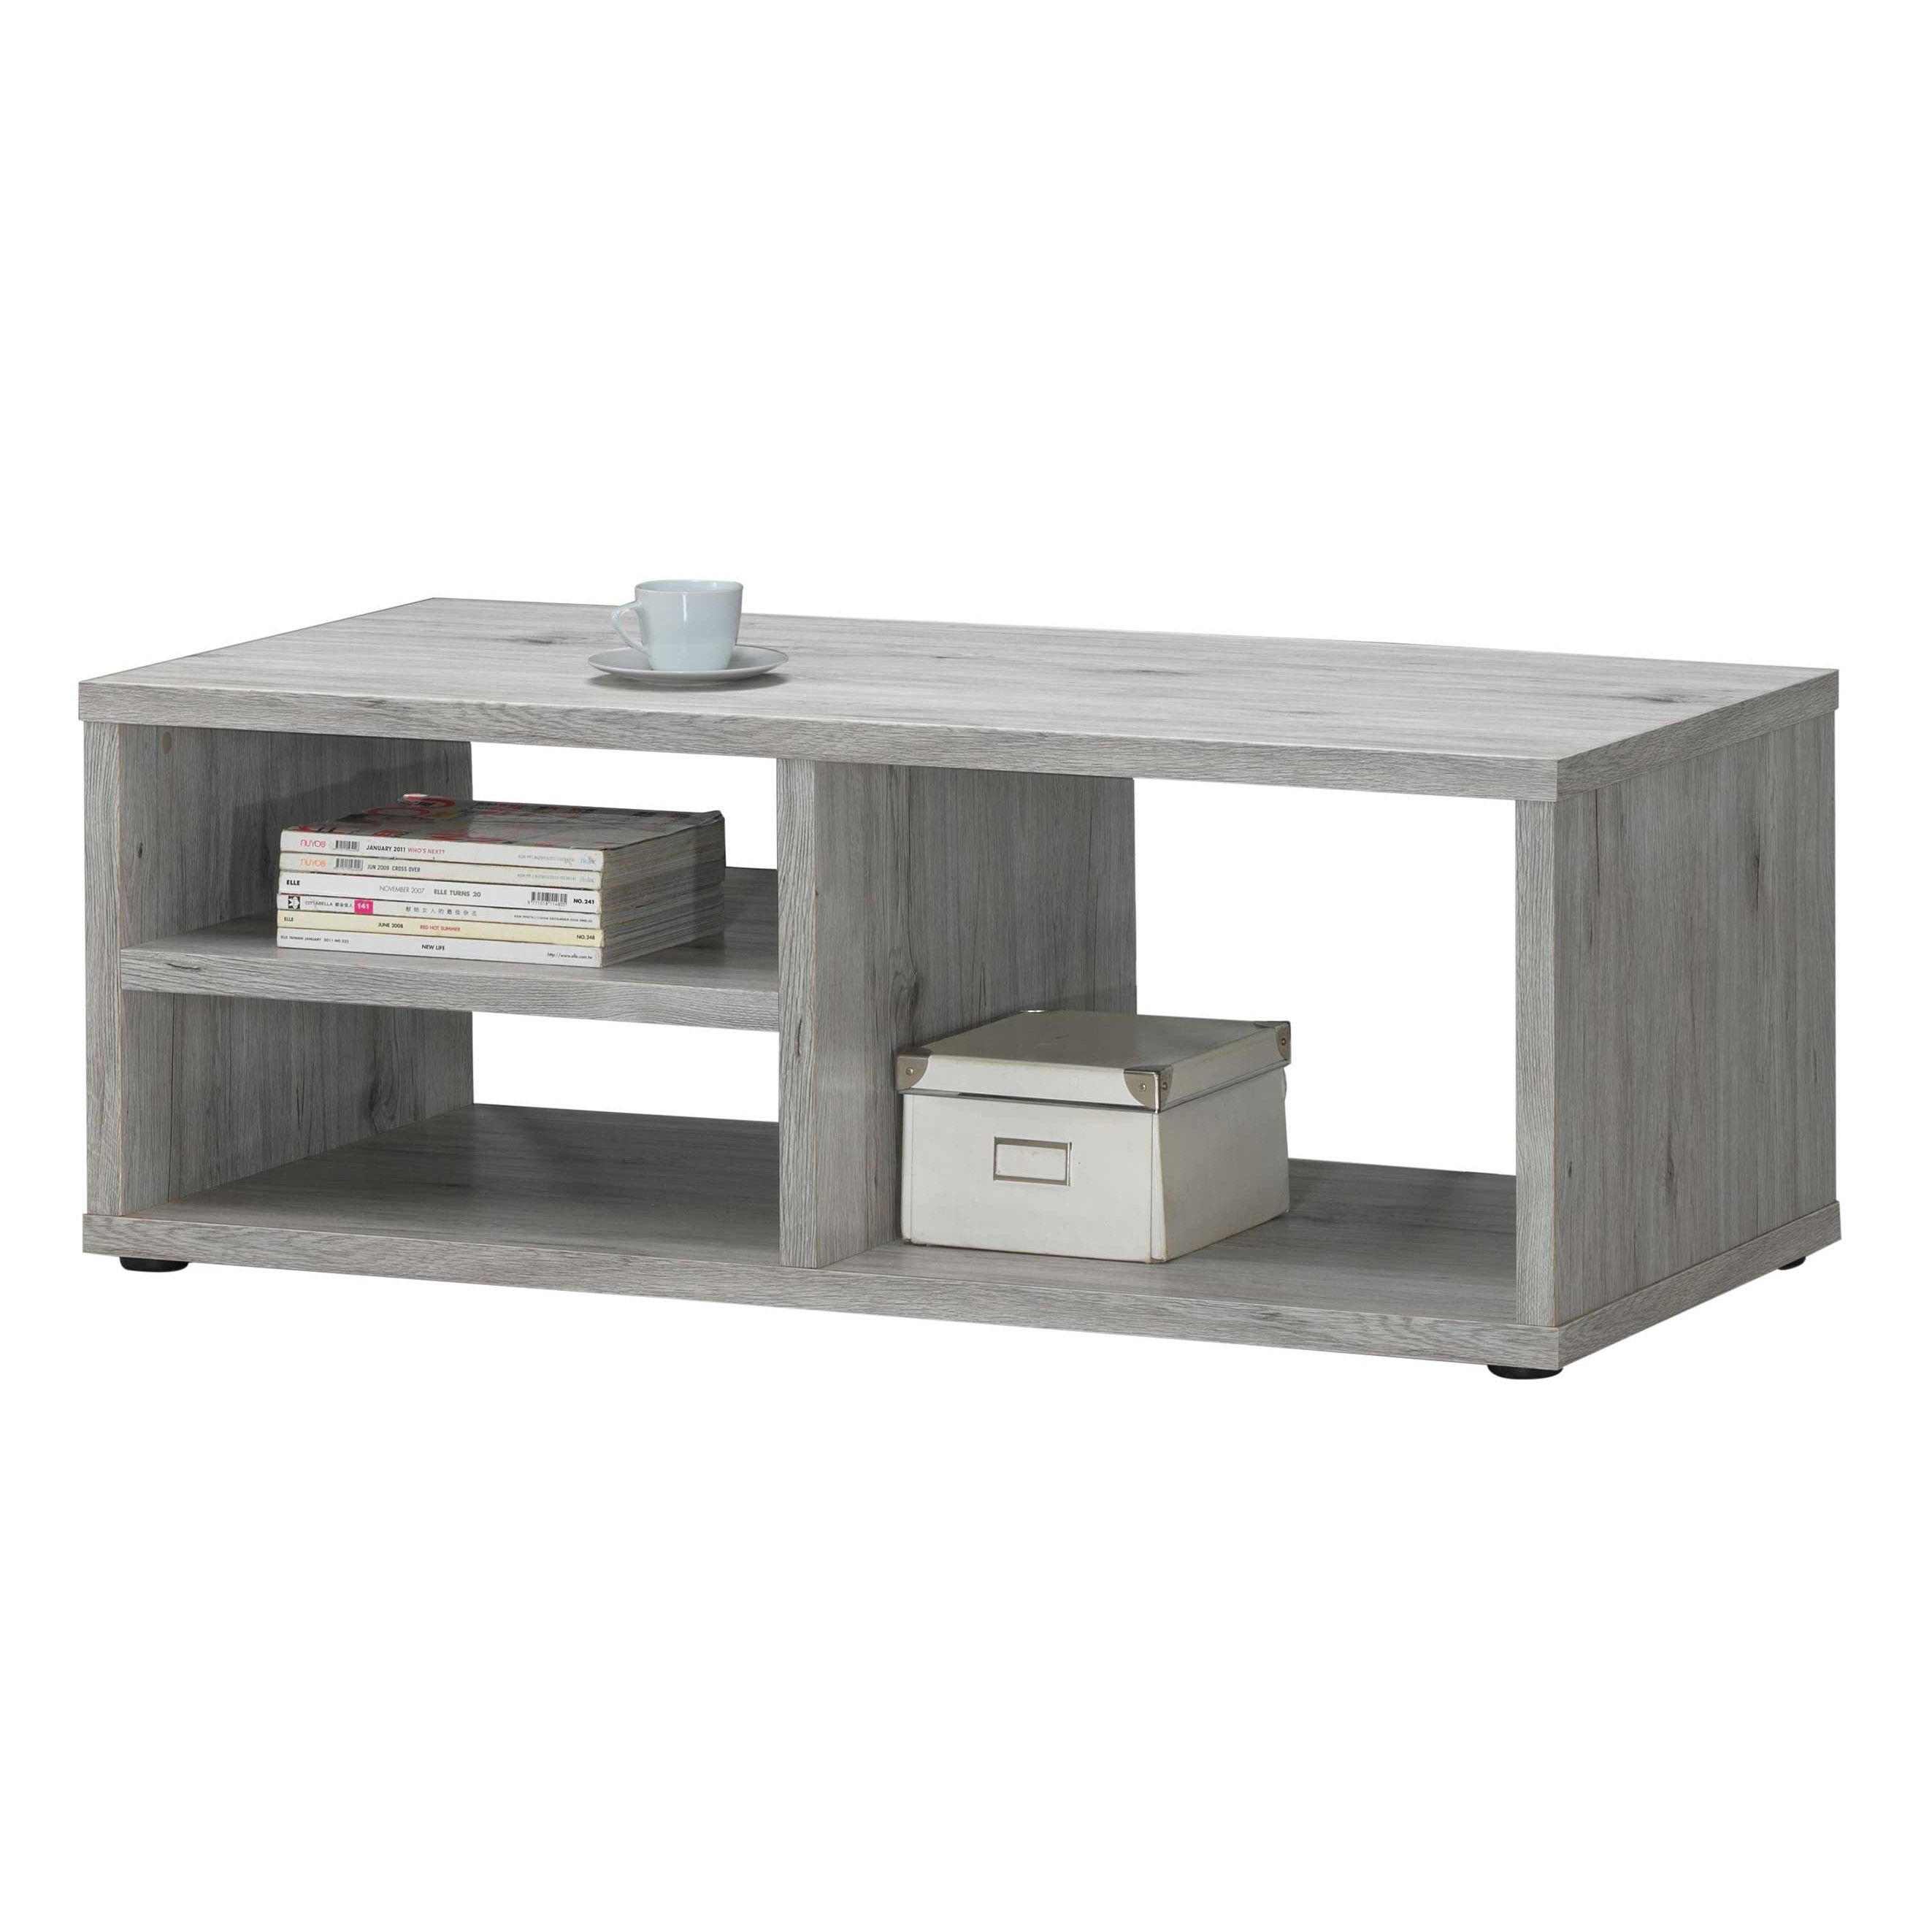 Eddy Dining Set Salontafel Table Salon Emob Emob